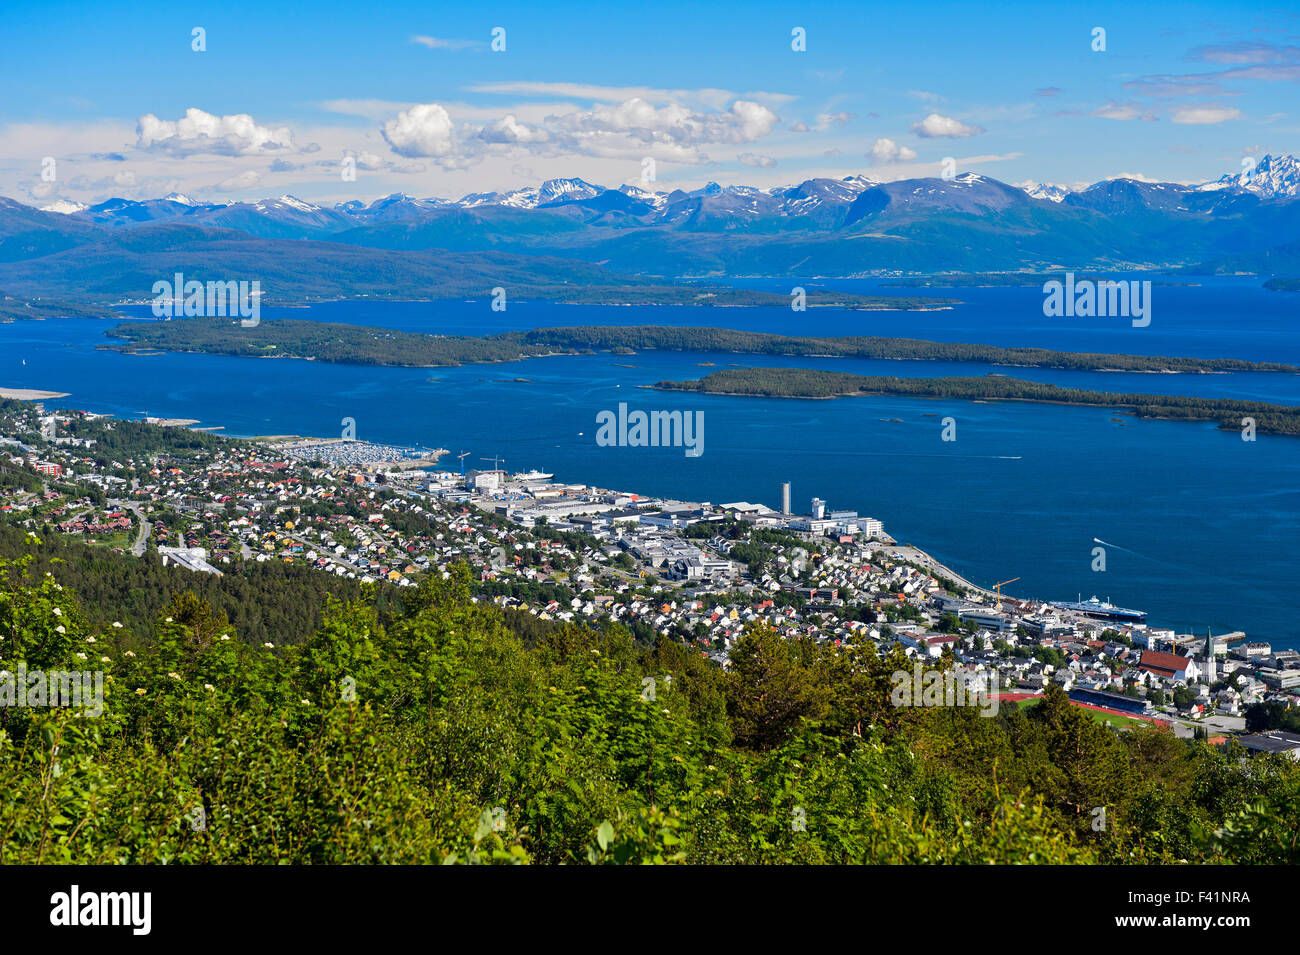 View of Molde on Moldefjord shore, Møre og Romsdal province, Norway - Stock Image